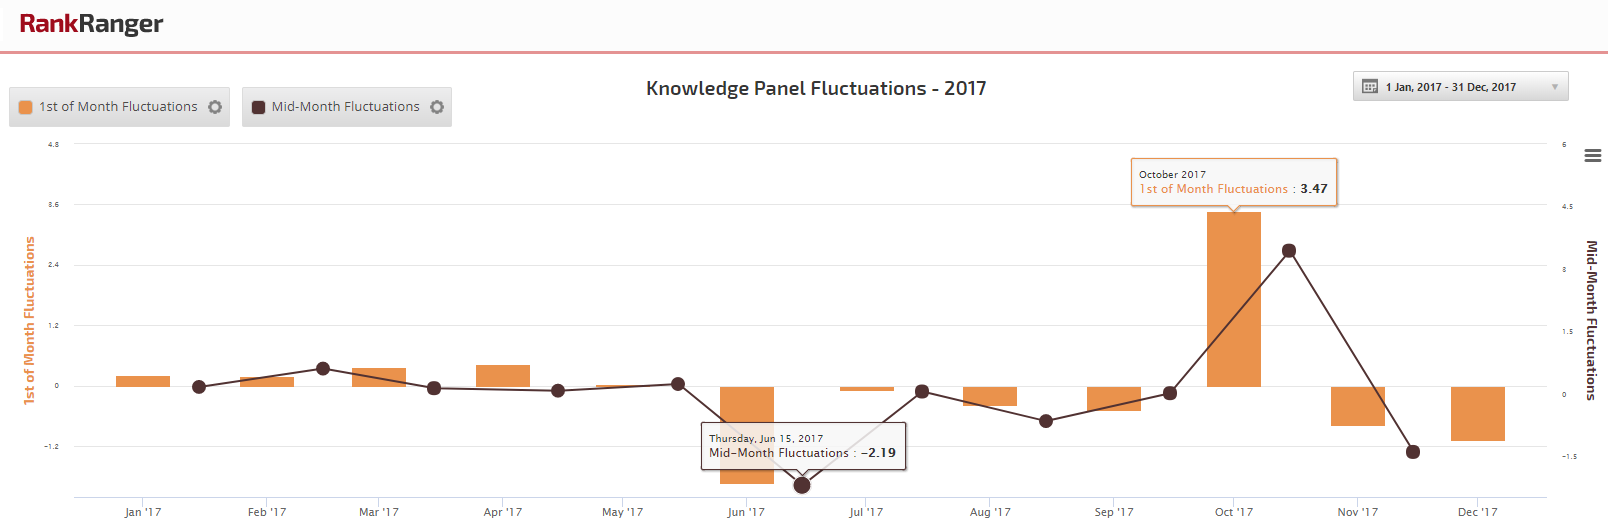 2017 Knowledge Panel Fluctuations